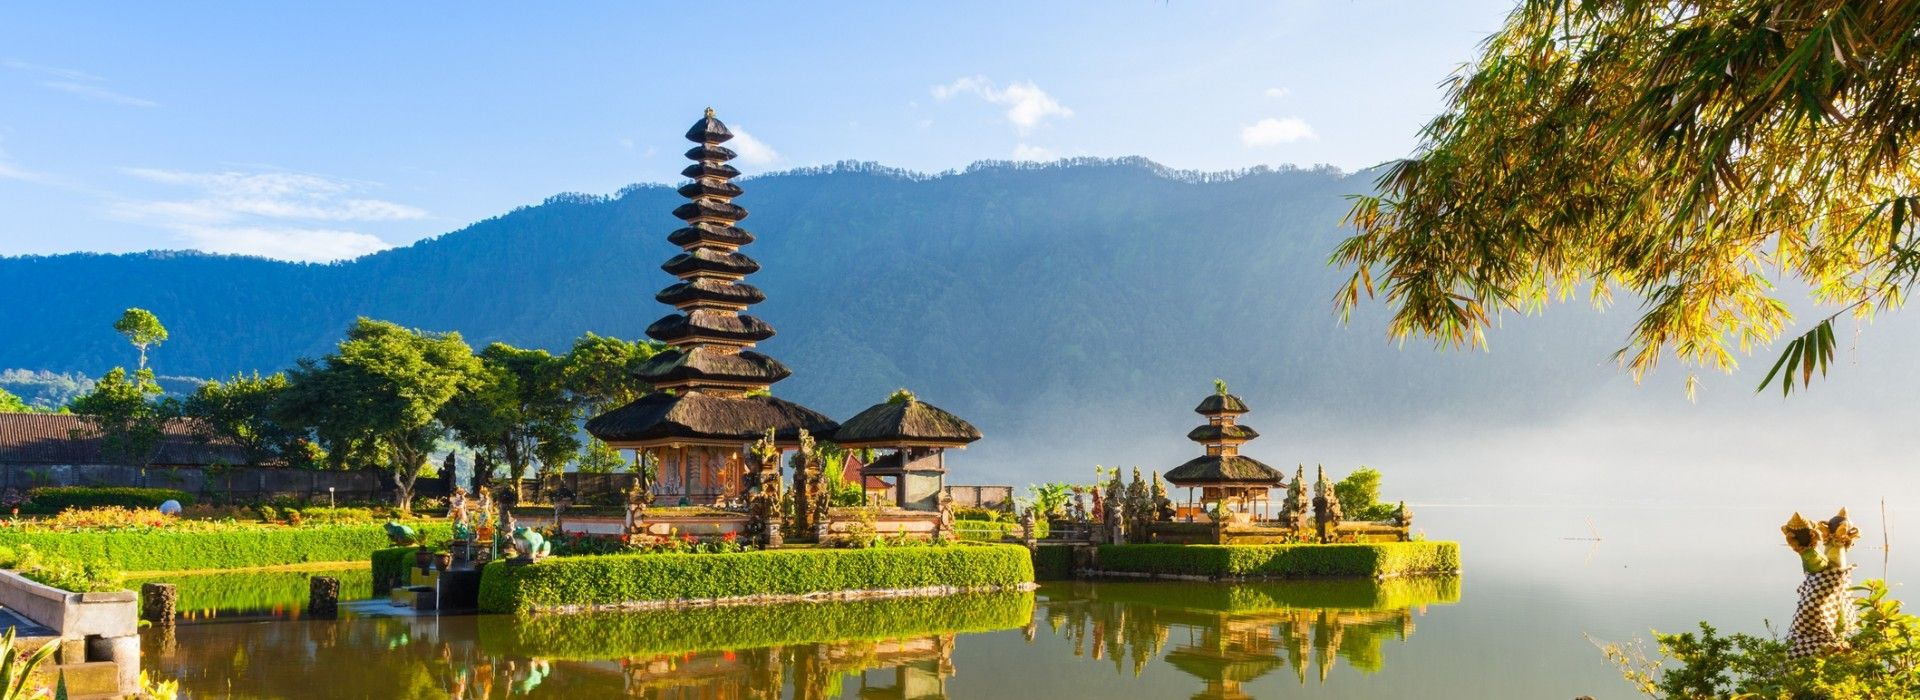 Boat tours, water sports and marine wildlife in Indonesia